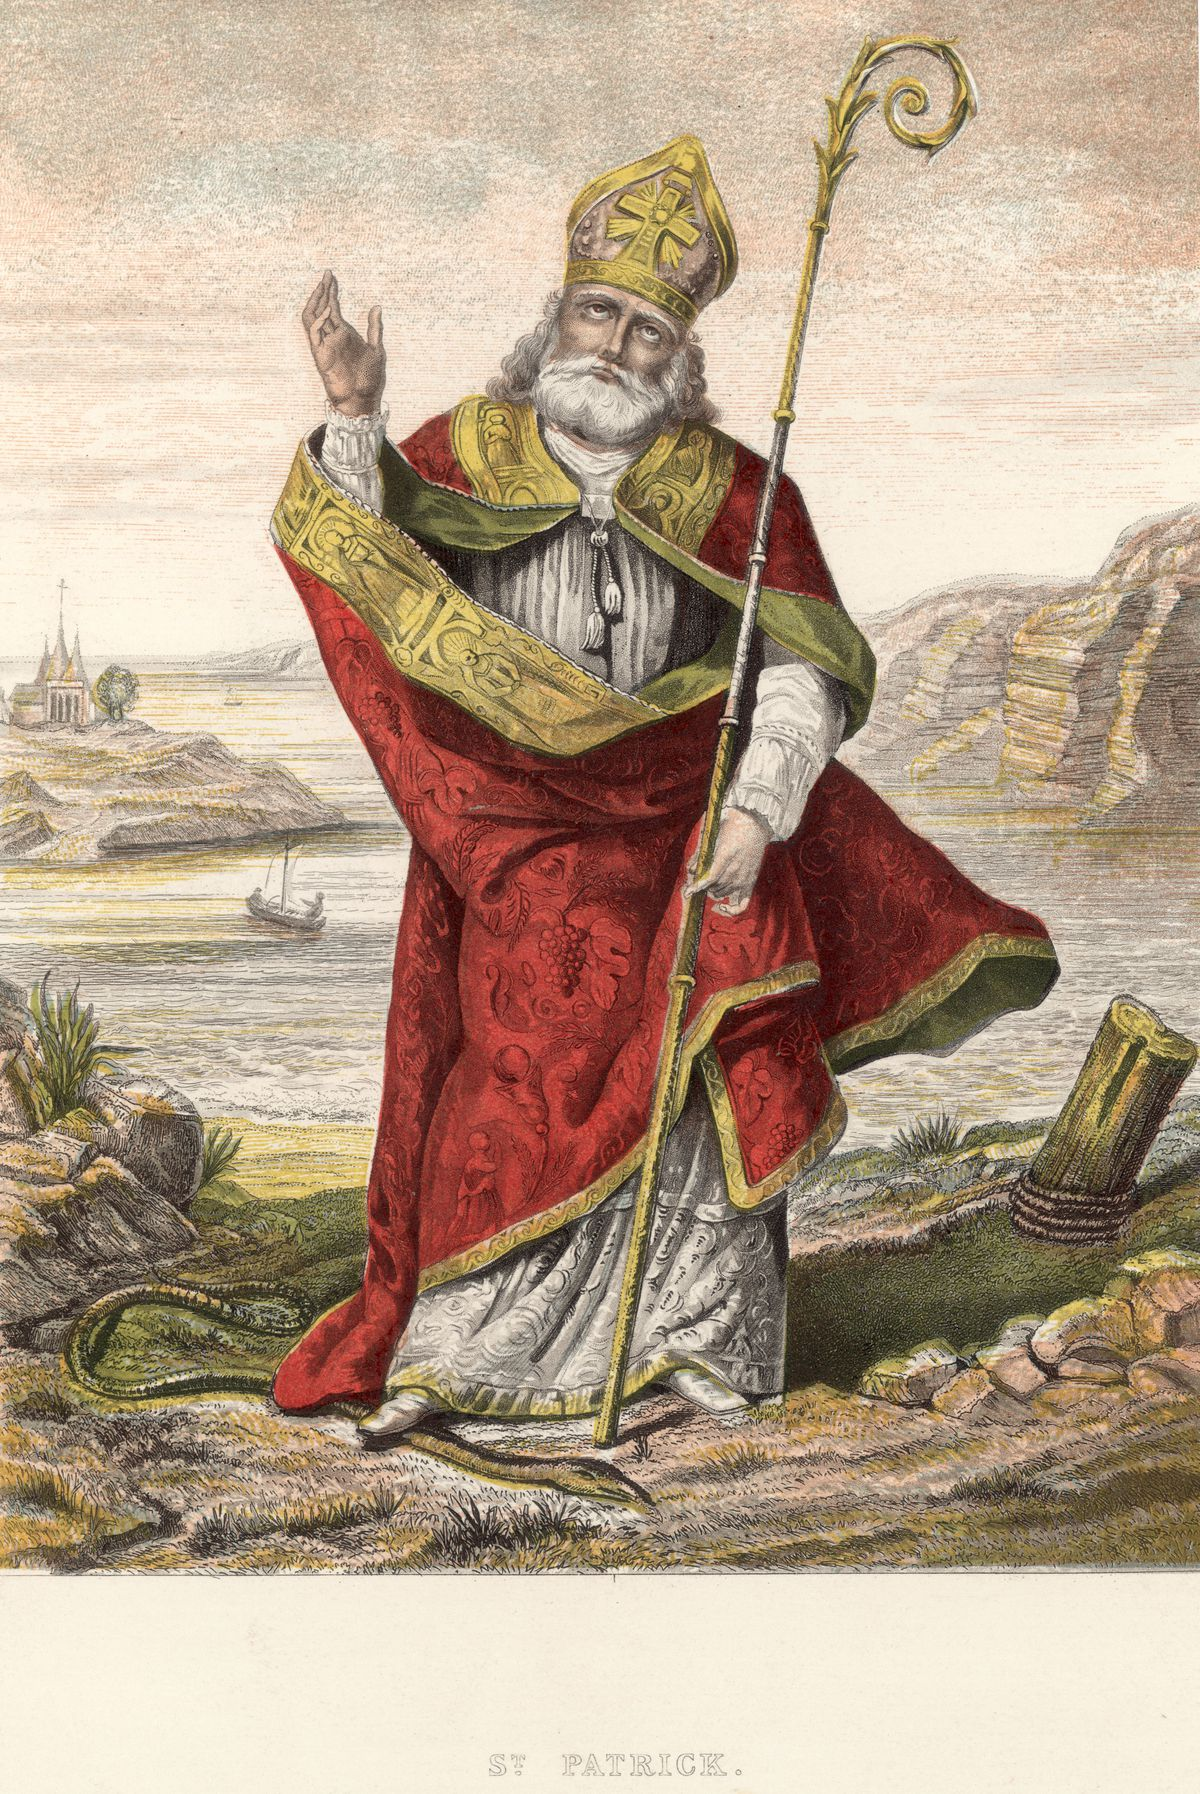 St. Patrick stepping on a snake. Image: Getty Images